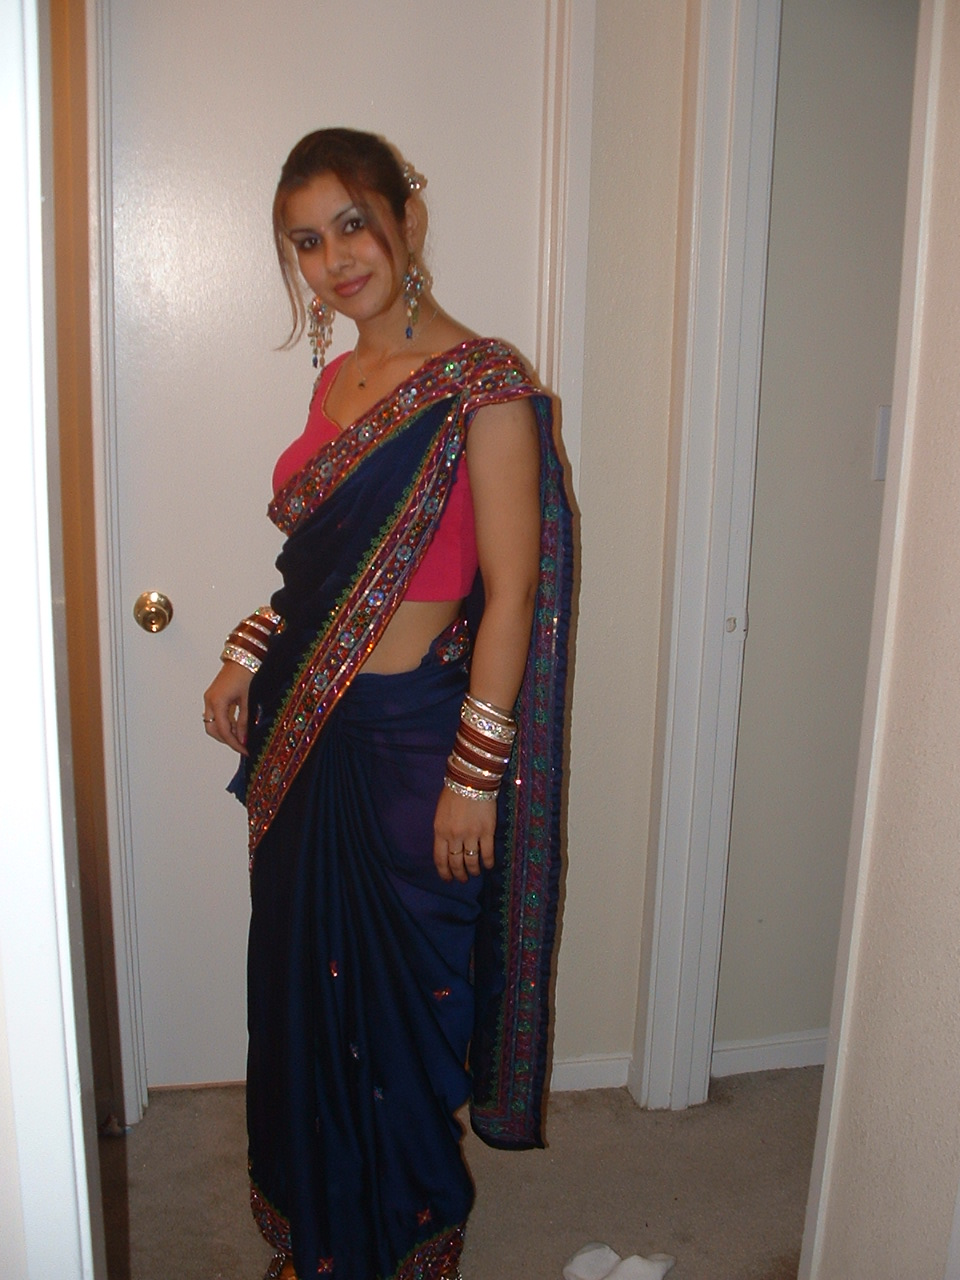 nude naked desi girl photos